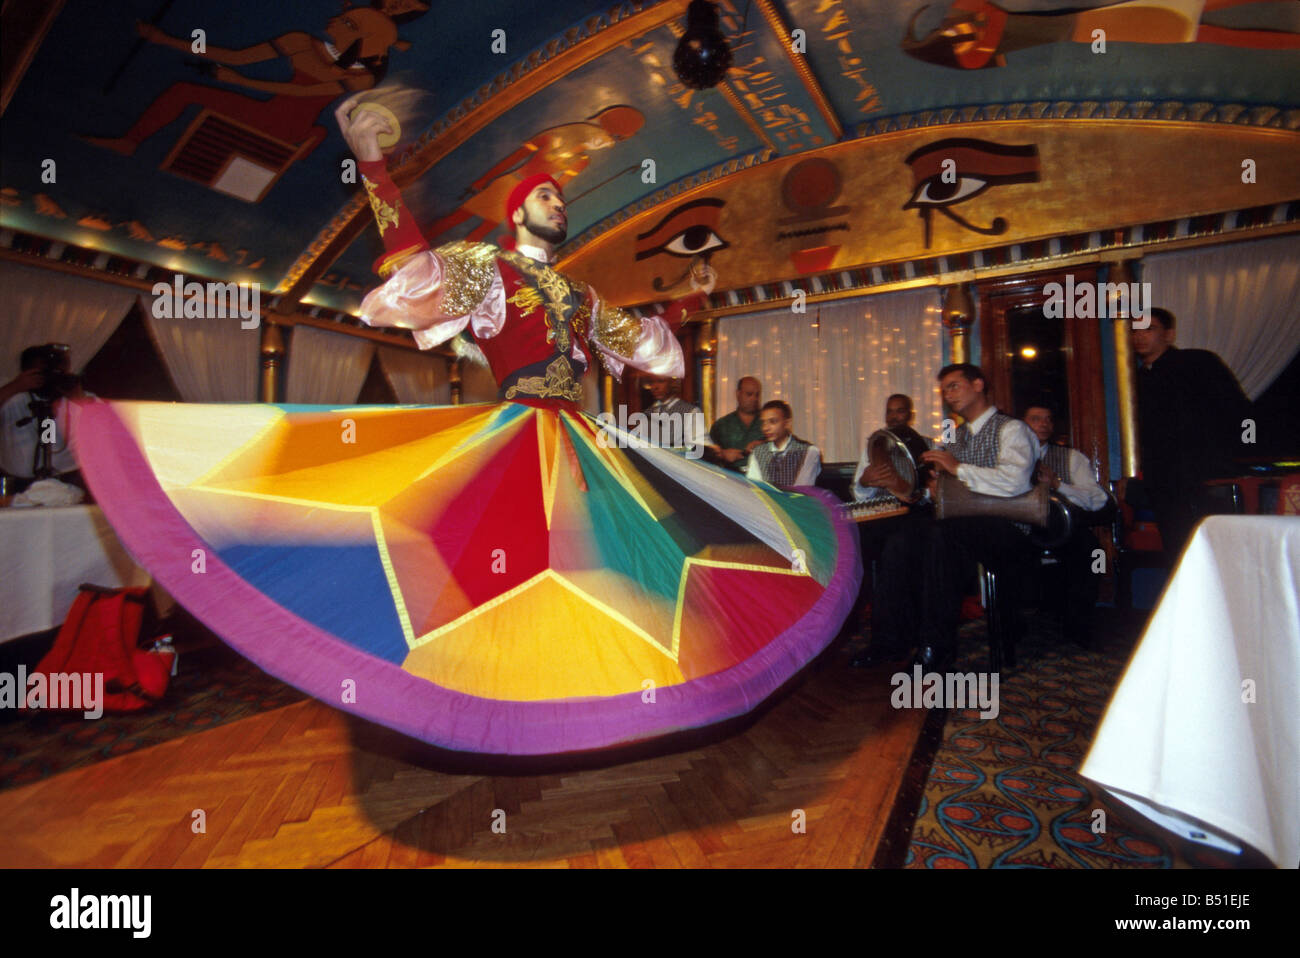 Whirling Dervish on Nile River boat show, Cairo, Egypt - Stock Image